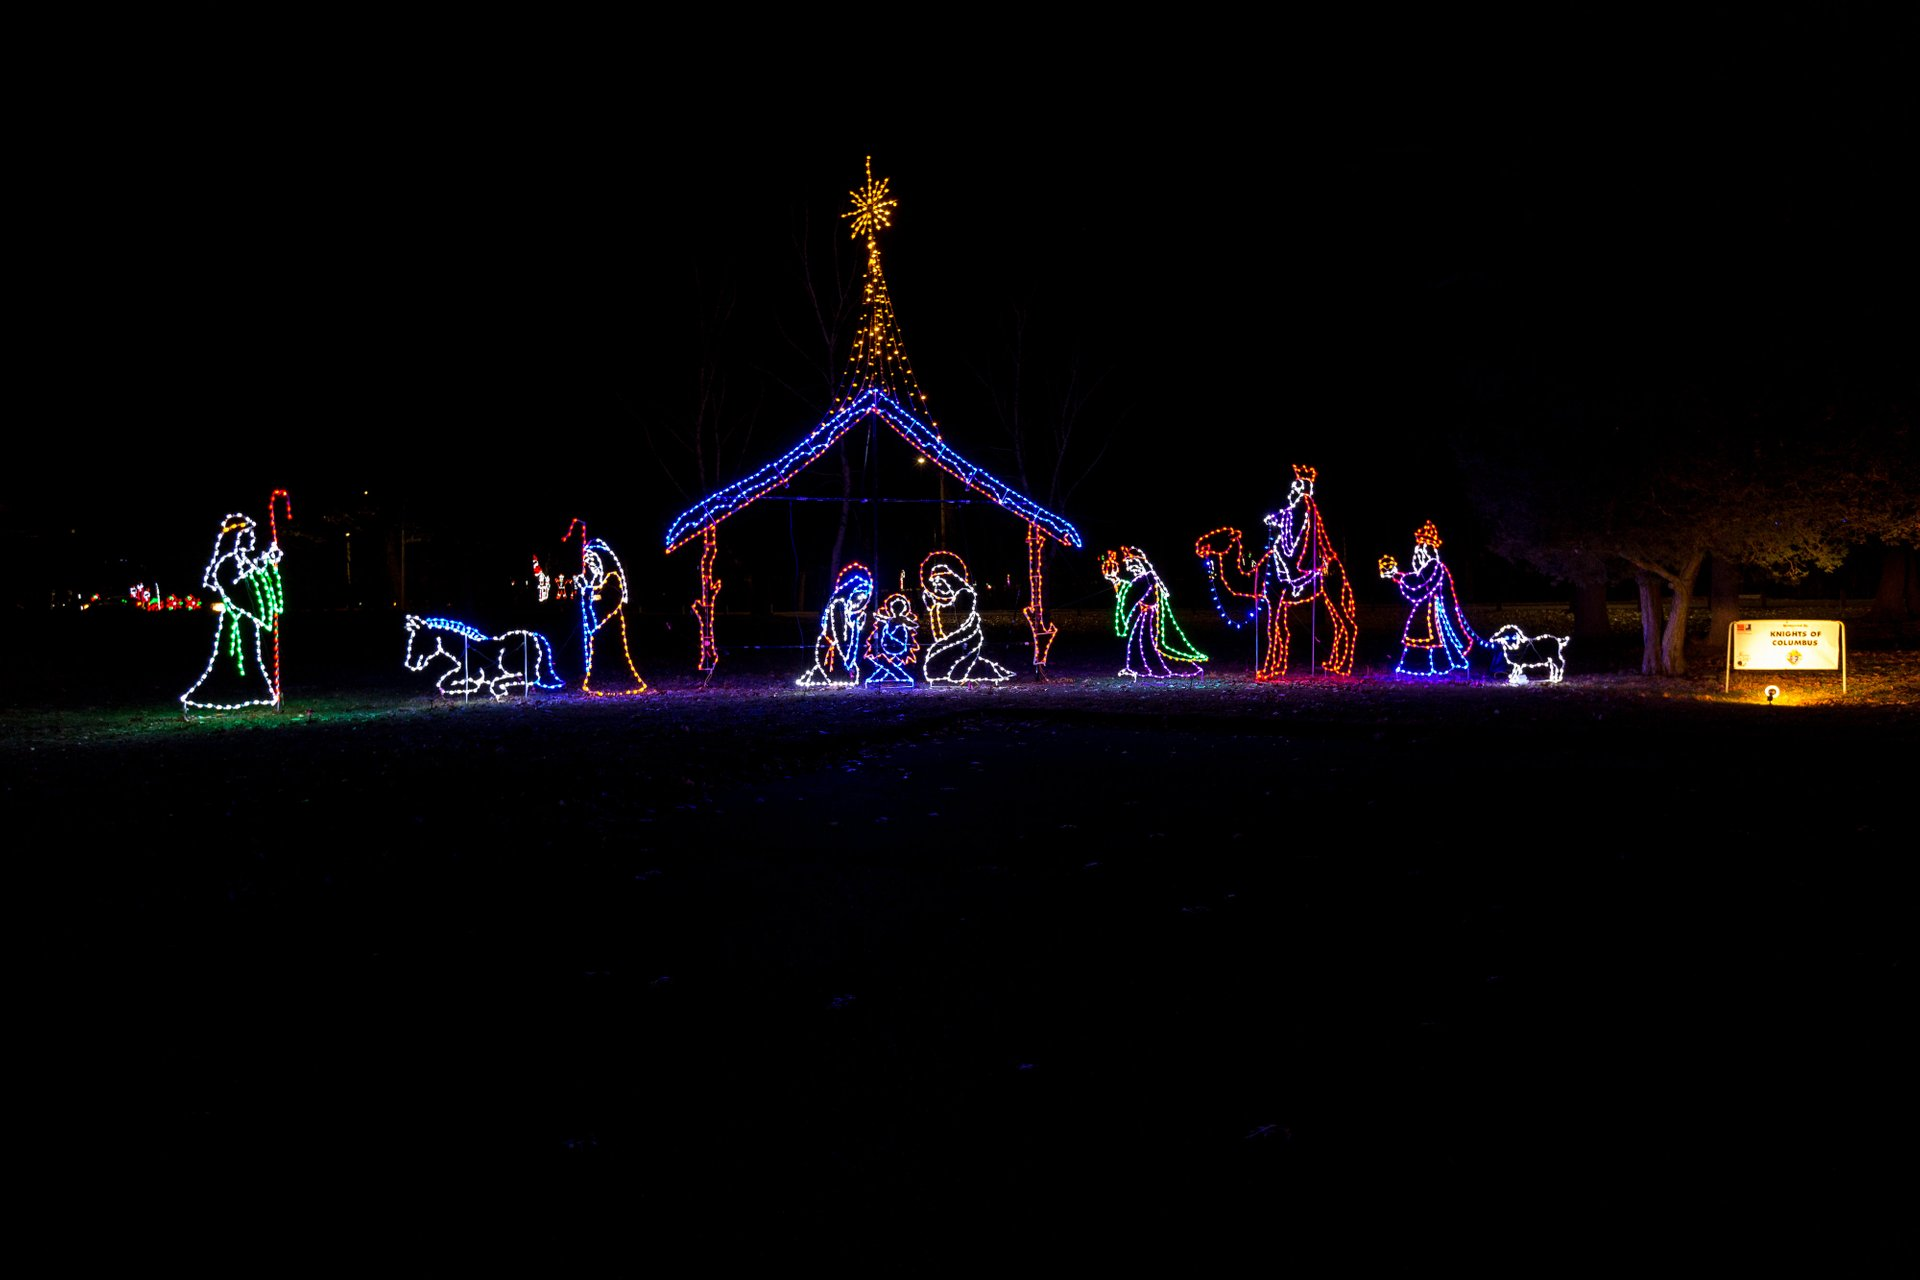 New Haven Fantasy of Lights in Connecticut - Best Season 2020